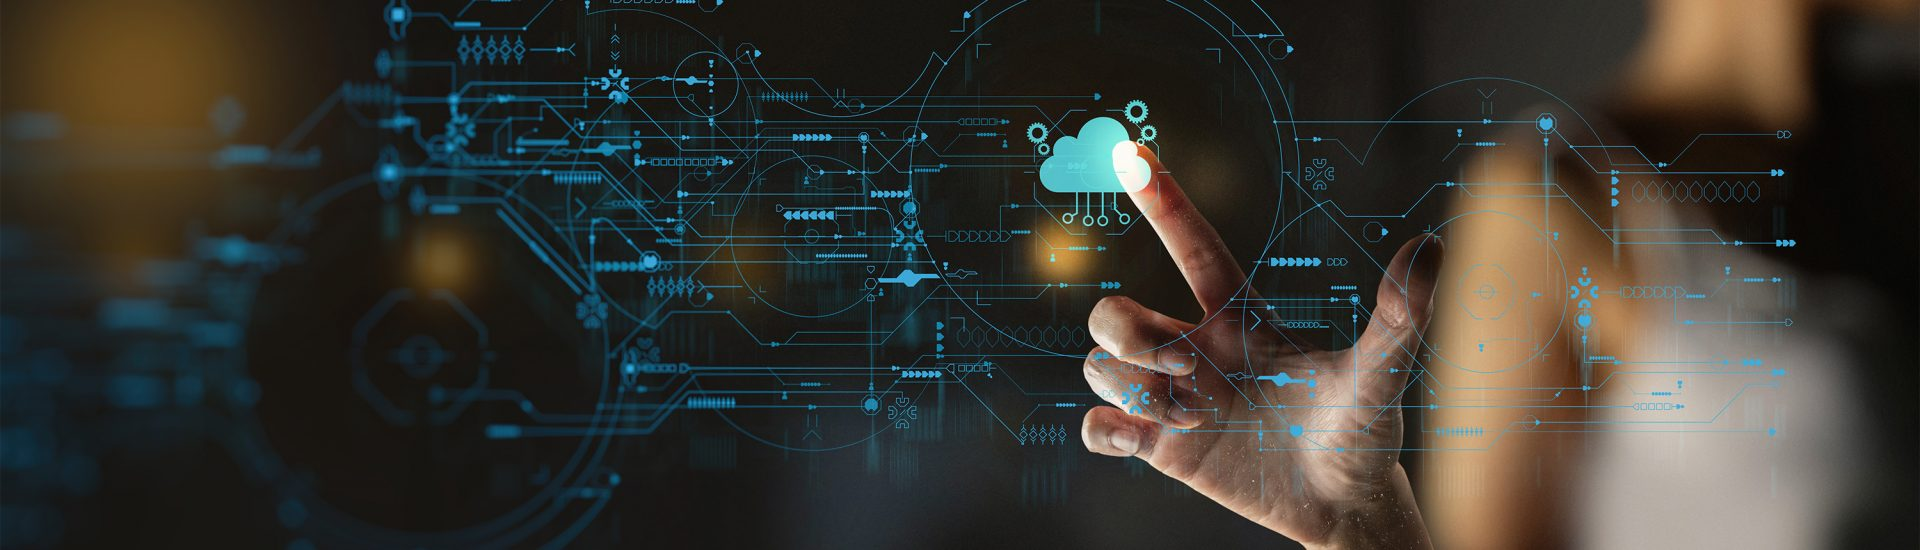 9 trends driving cloud communications in 2021